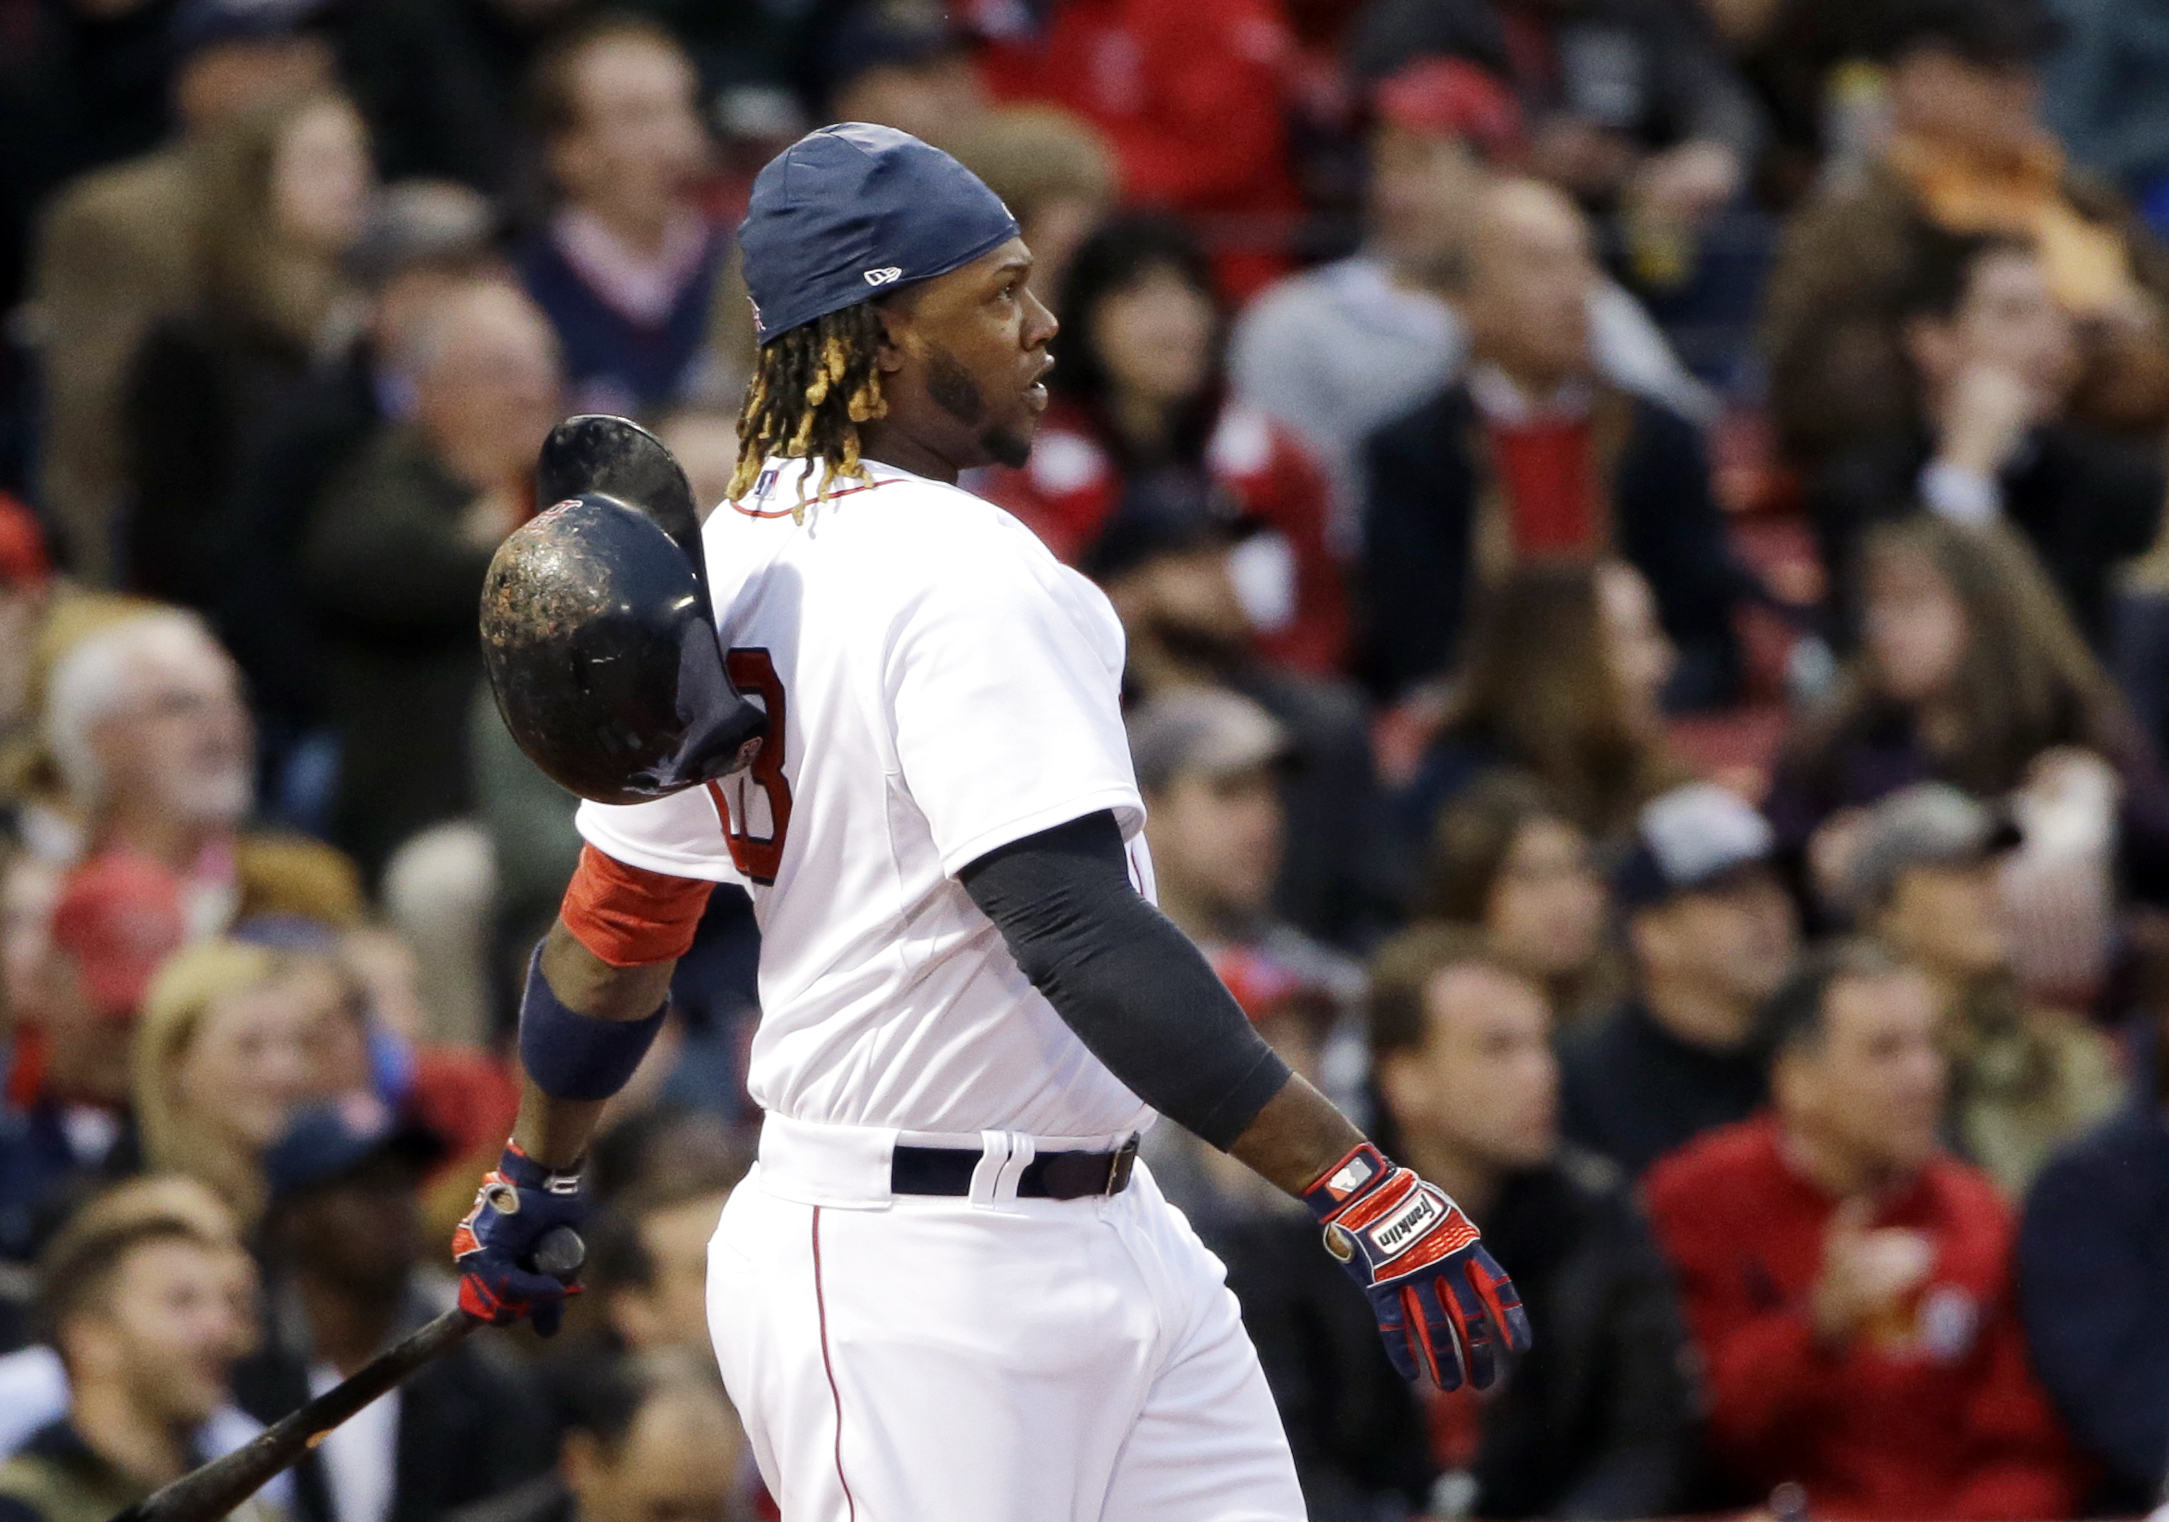 Boston Red Sox's Hanley Ramirez watches  his two-run homer in the third inning of a baseball game against the Toronto Blue Jays at Fenway Park in Boston, Wednesday, April 29, 2015. (AP Photo/Elise Amendola)